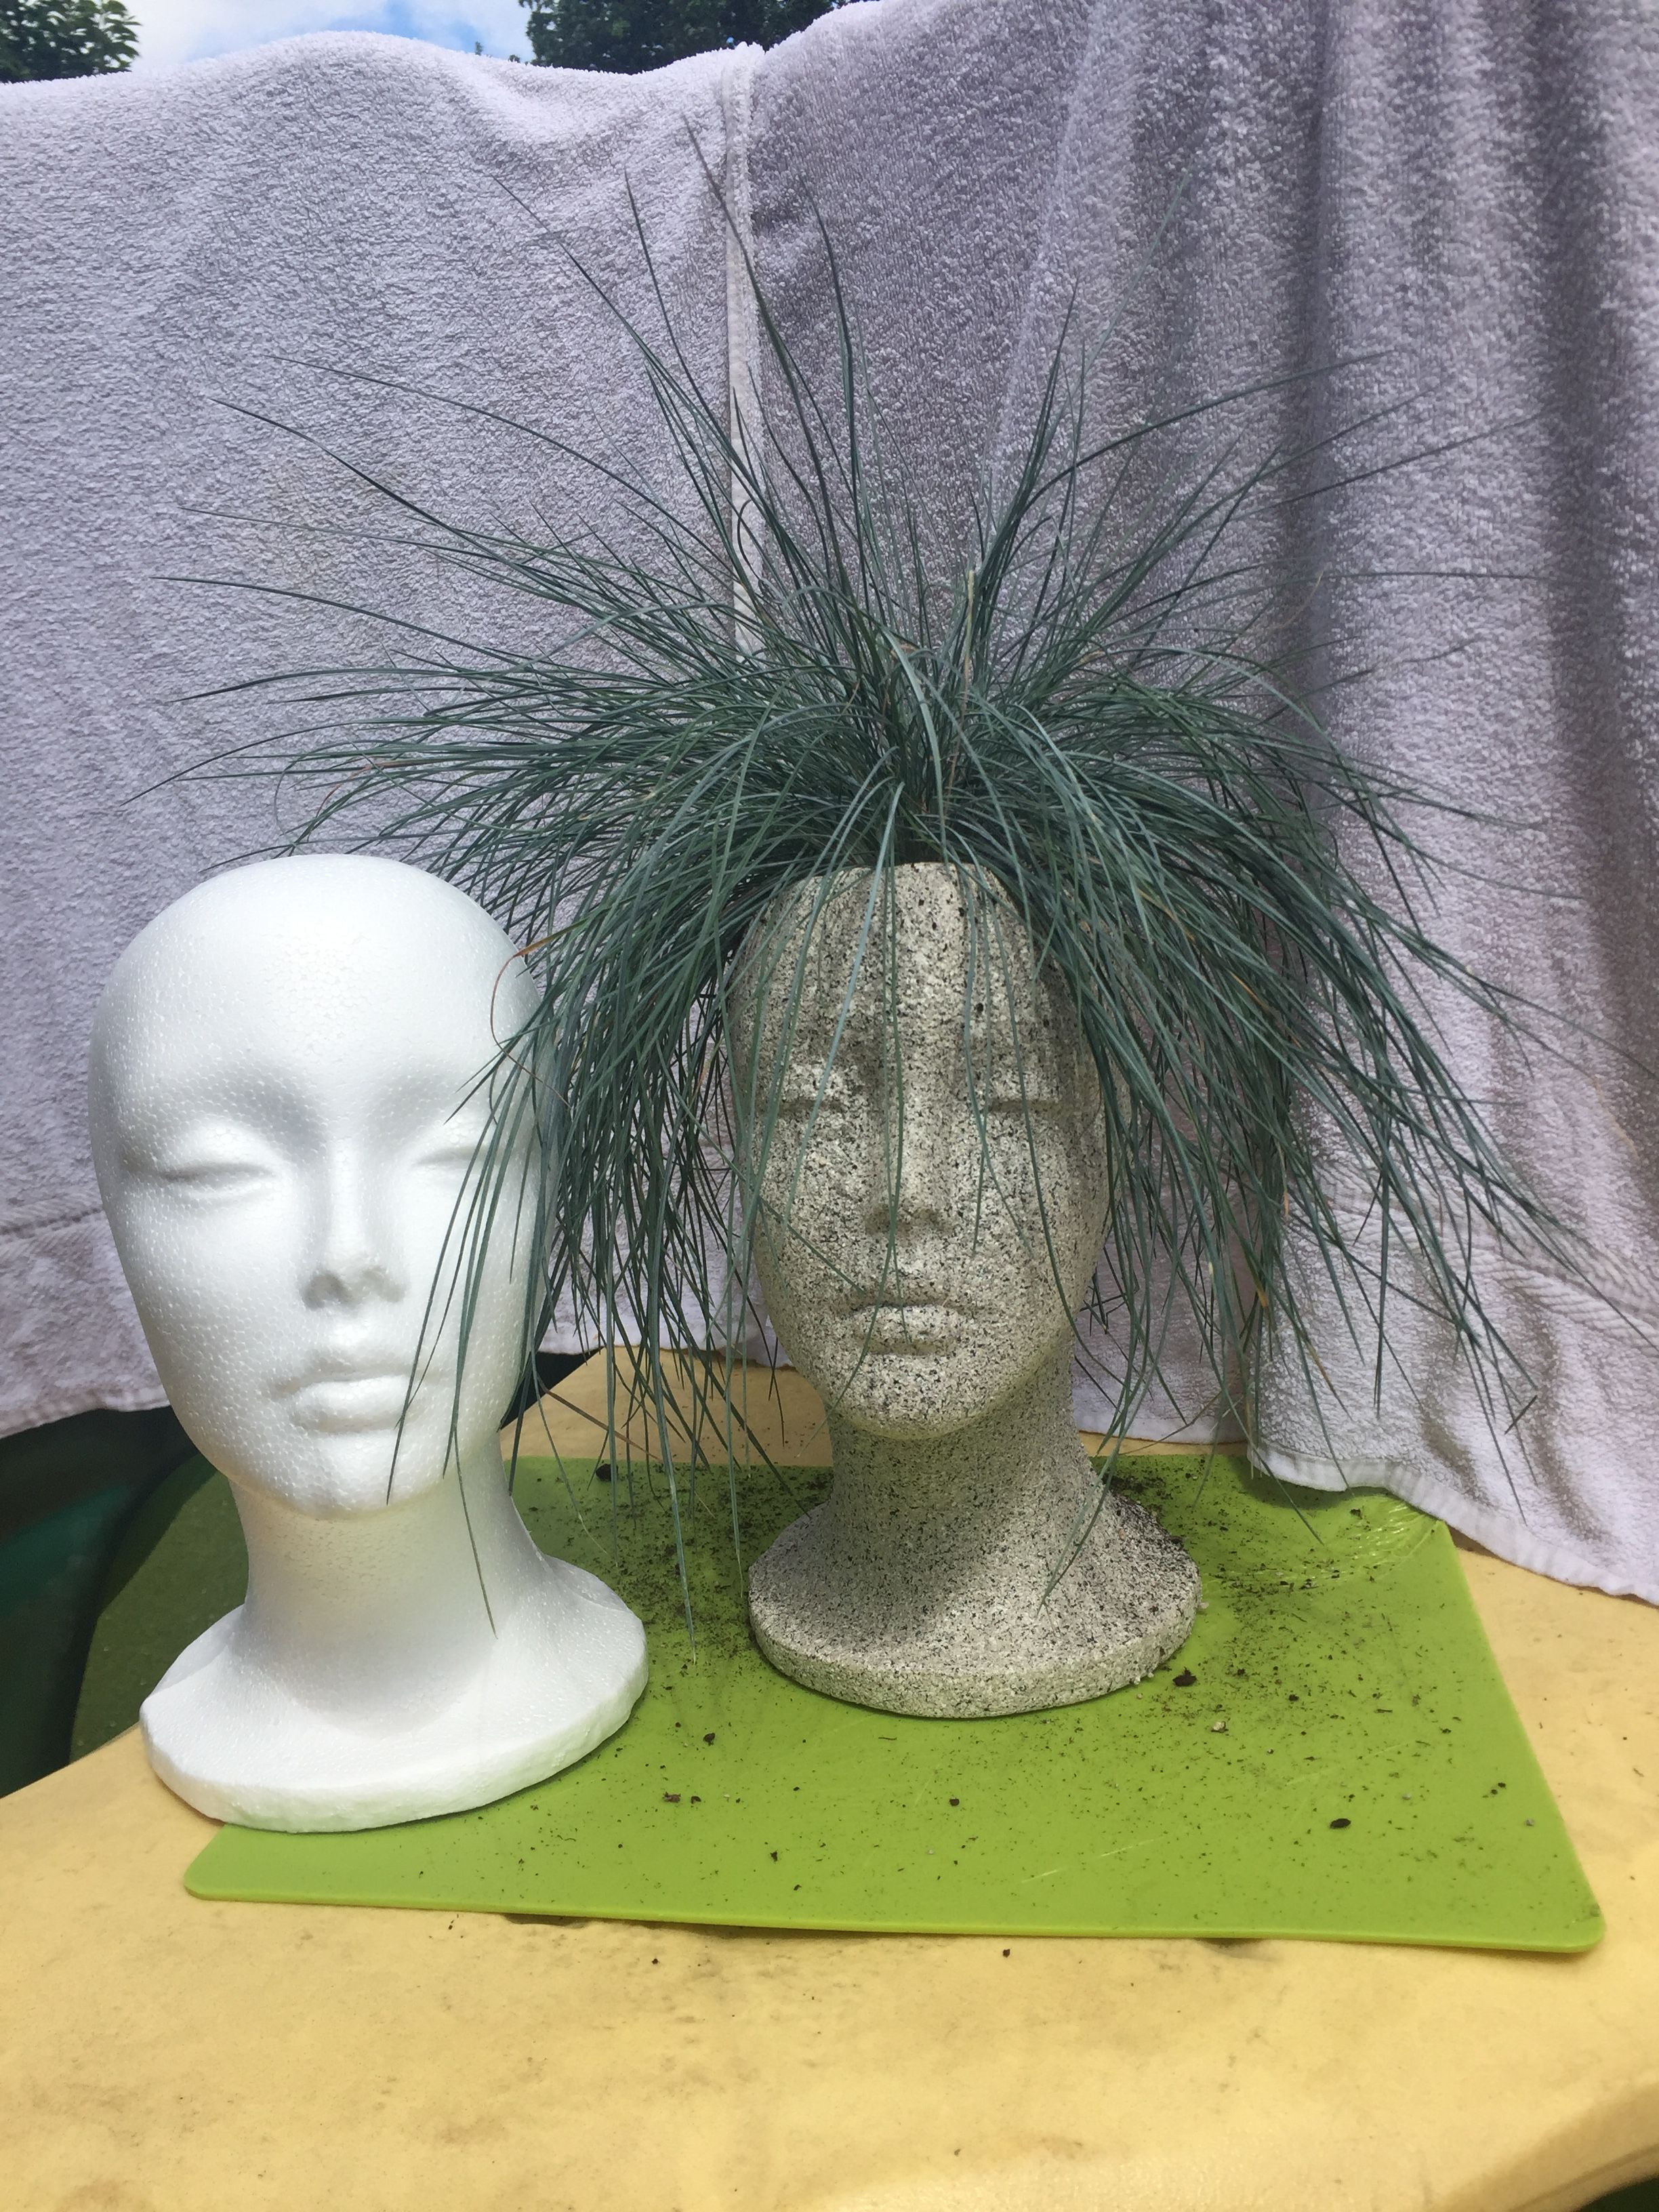 lady head vases of head planters i made headplanters vases headvases plants with styrofoam head into plant pot